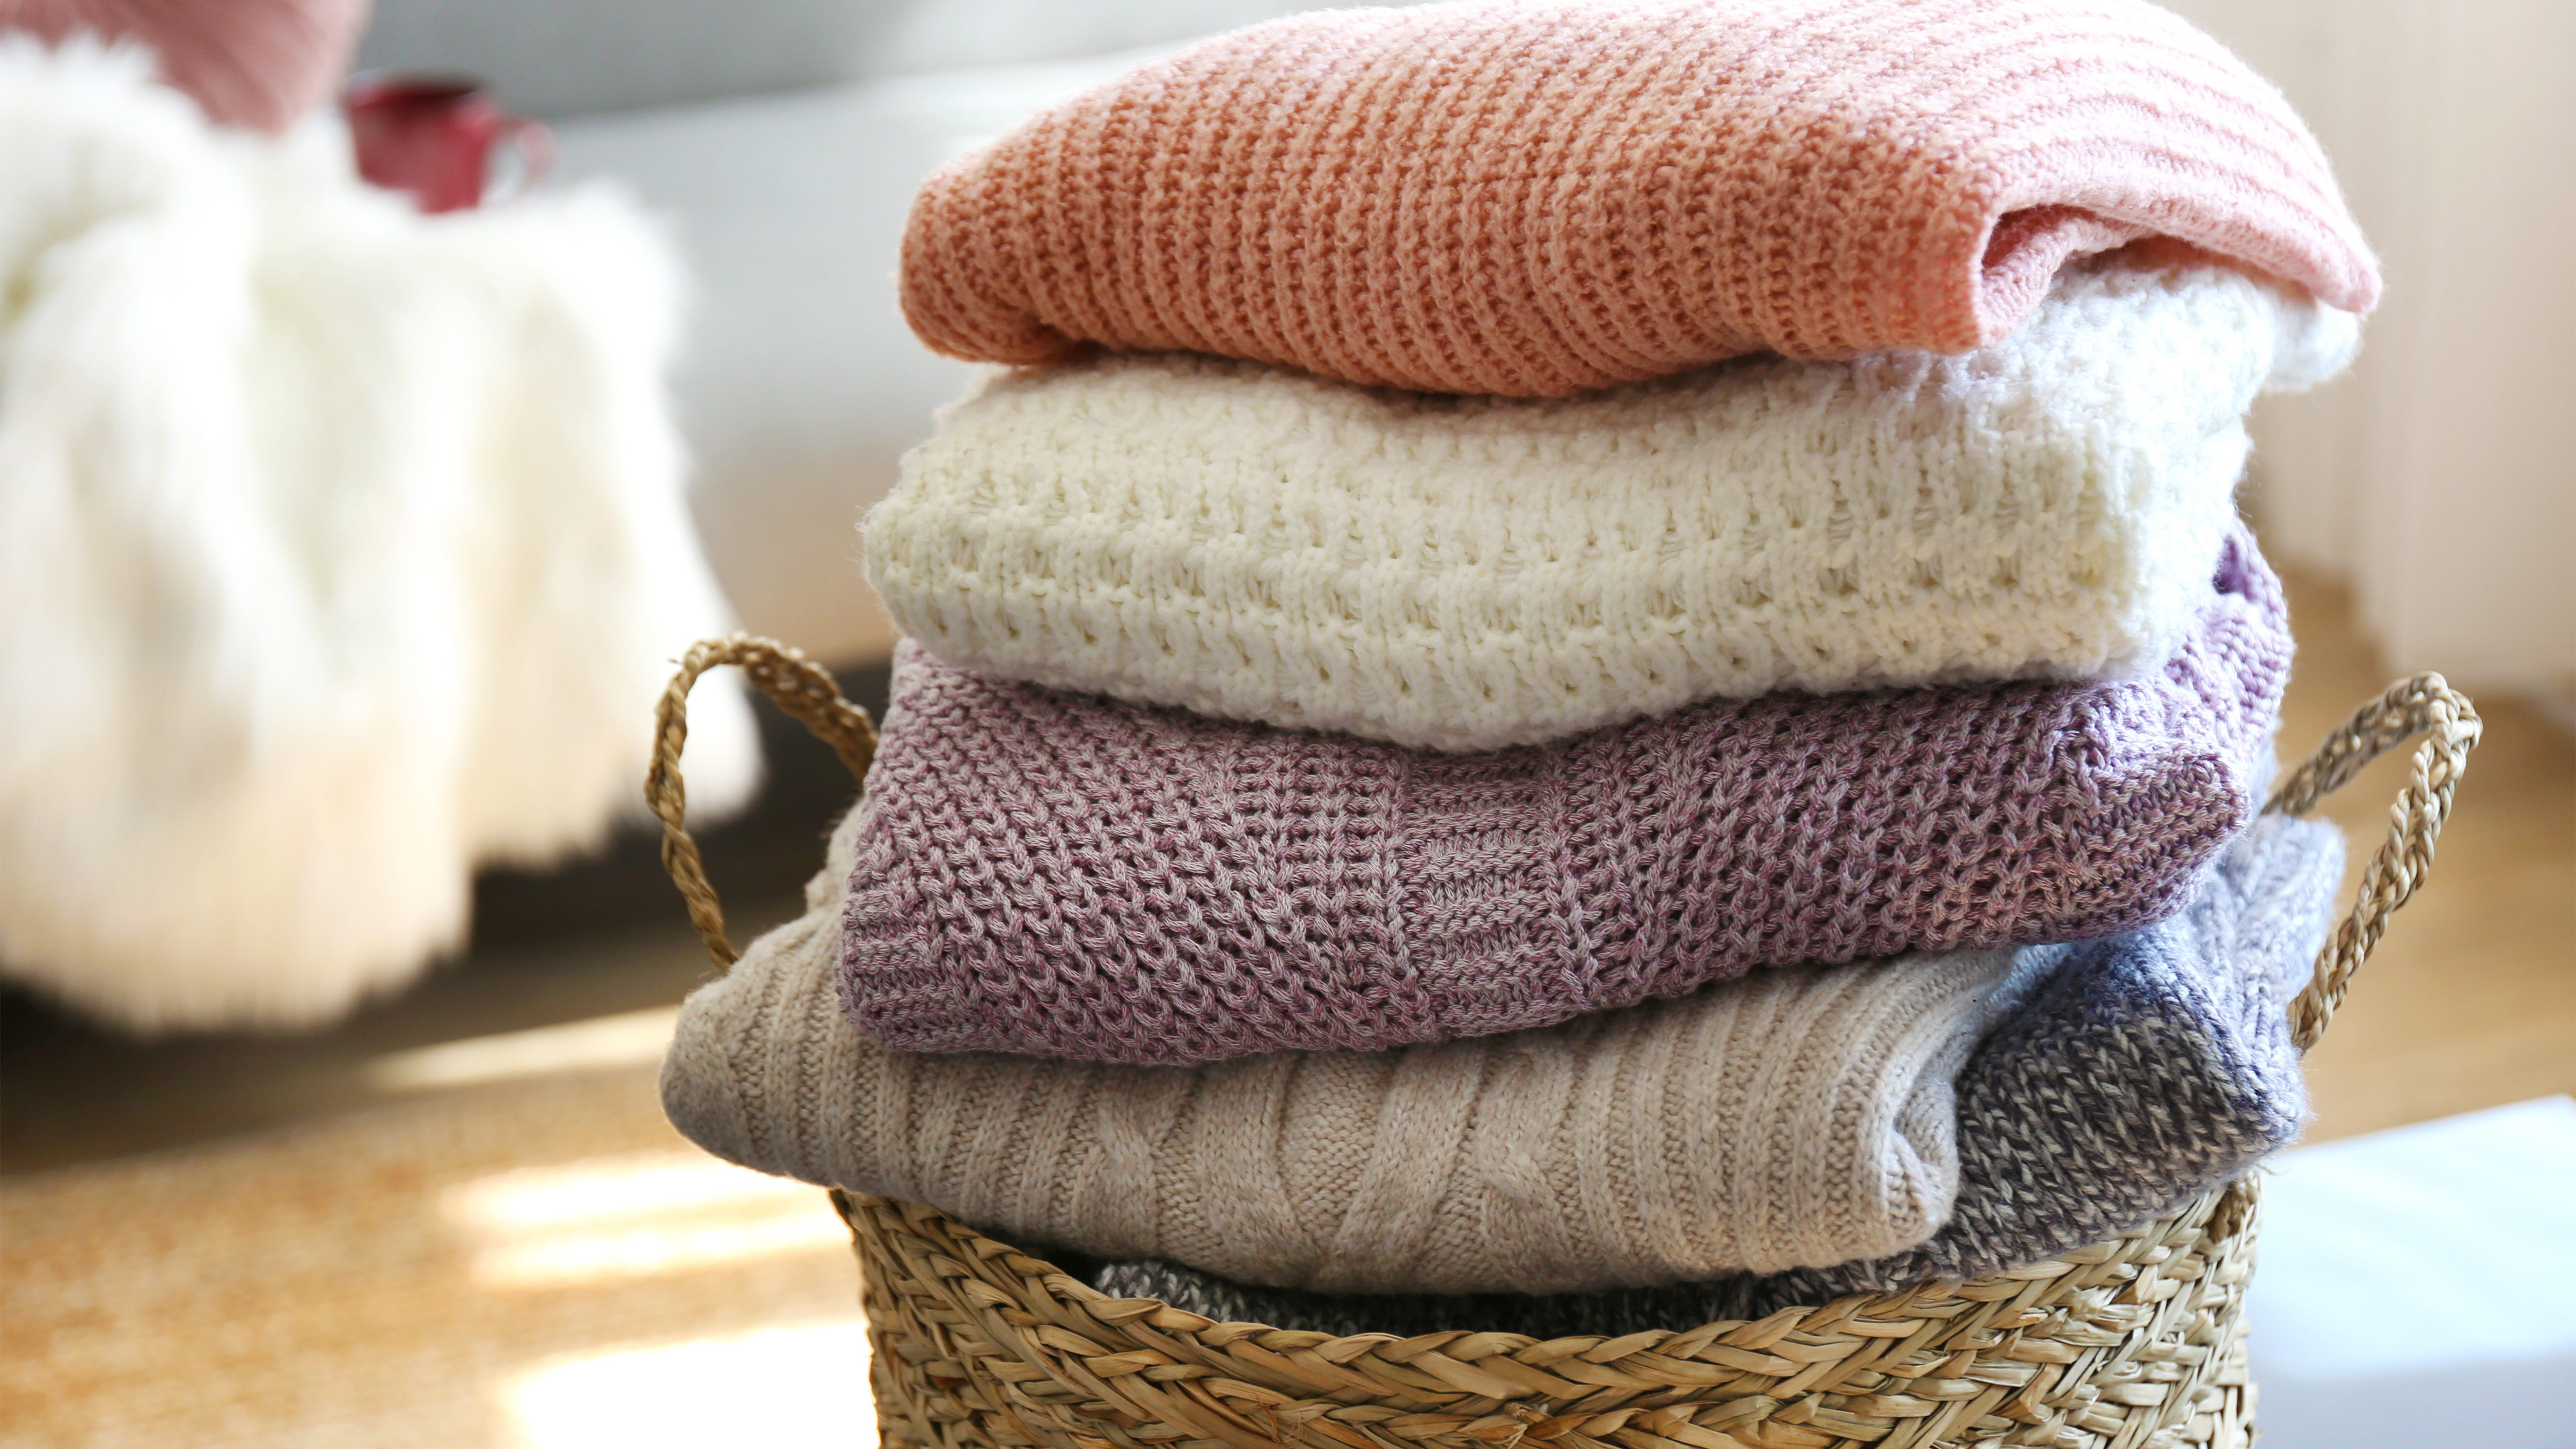 Cozy sweaters and throw blankets are up to 50% off at Anthropologie—but only for today